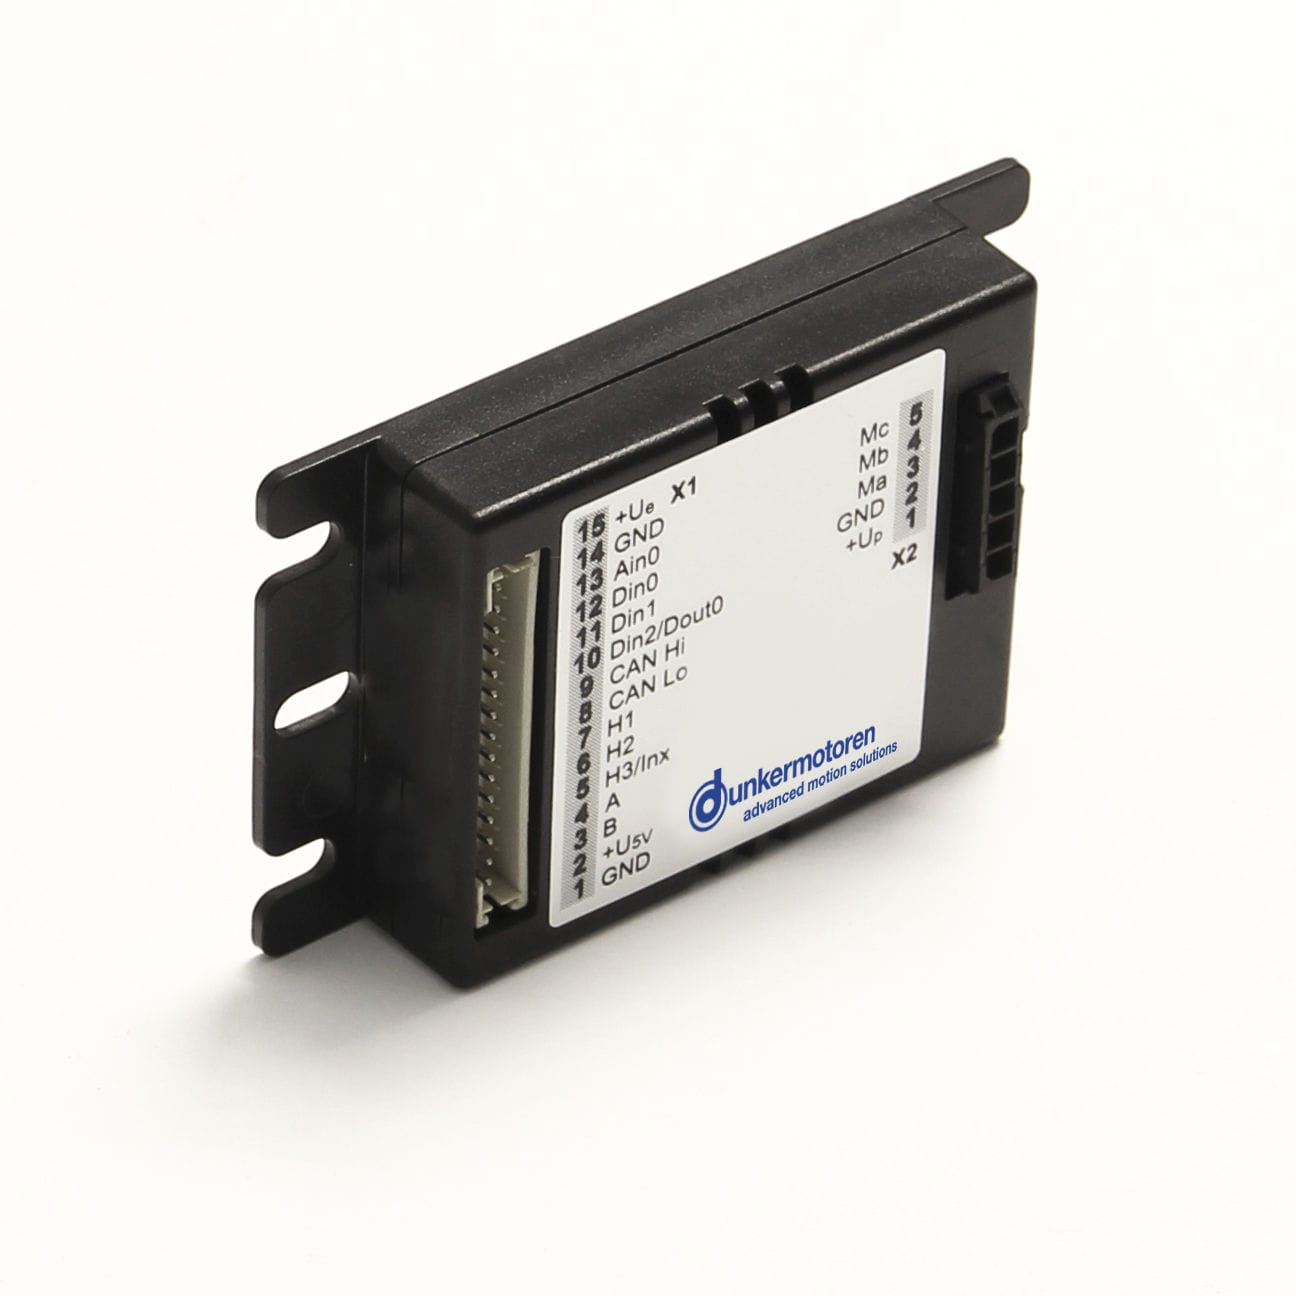 Brushless Speed Controller Dc Canopen Compact Bge 6005 A Brushed Motor Servo Control Of Brush